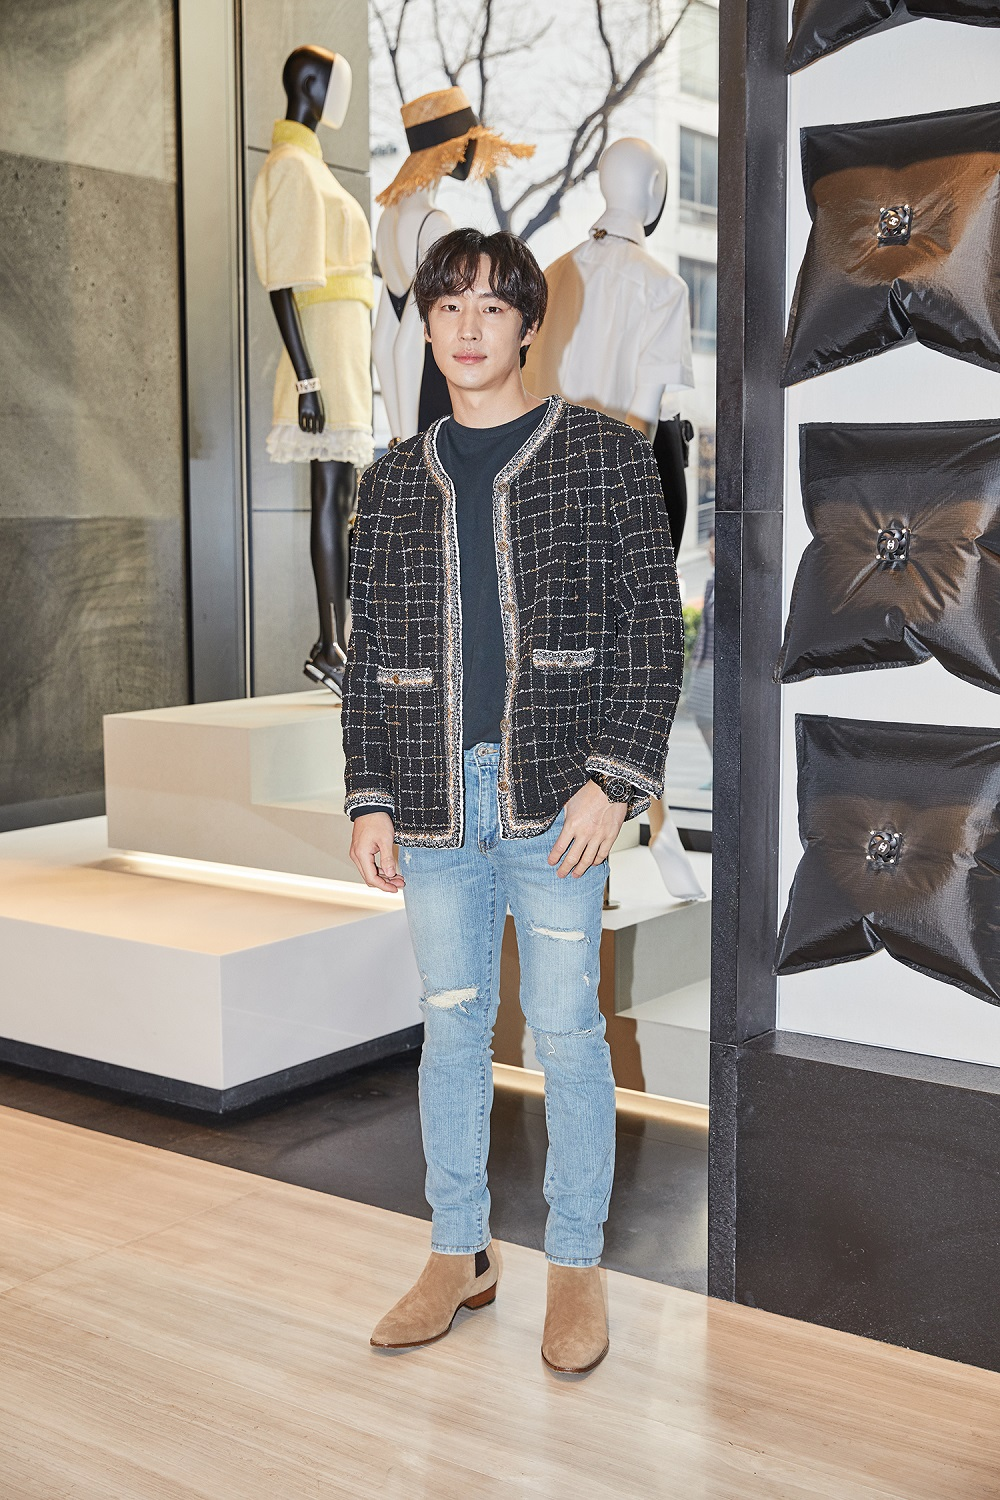 Je-hoon Lee wore a tweed jacket (look 2 from the Spring-Summer 2017 Ready-to-Wear collection) and